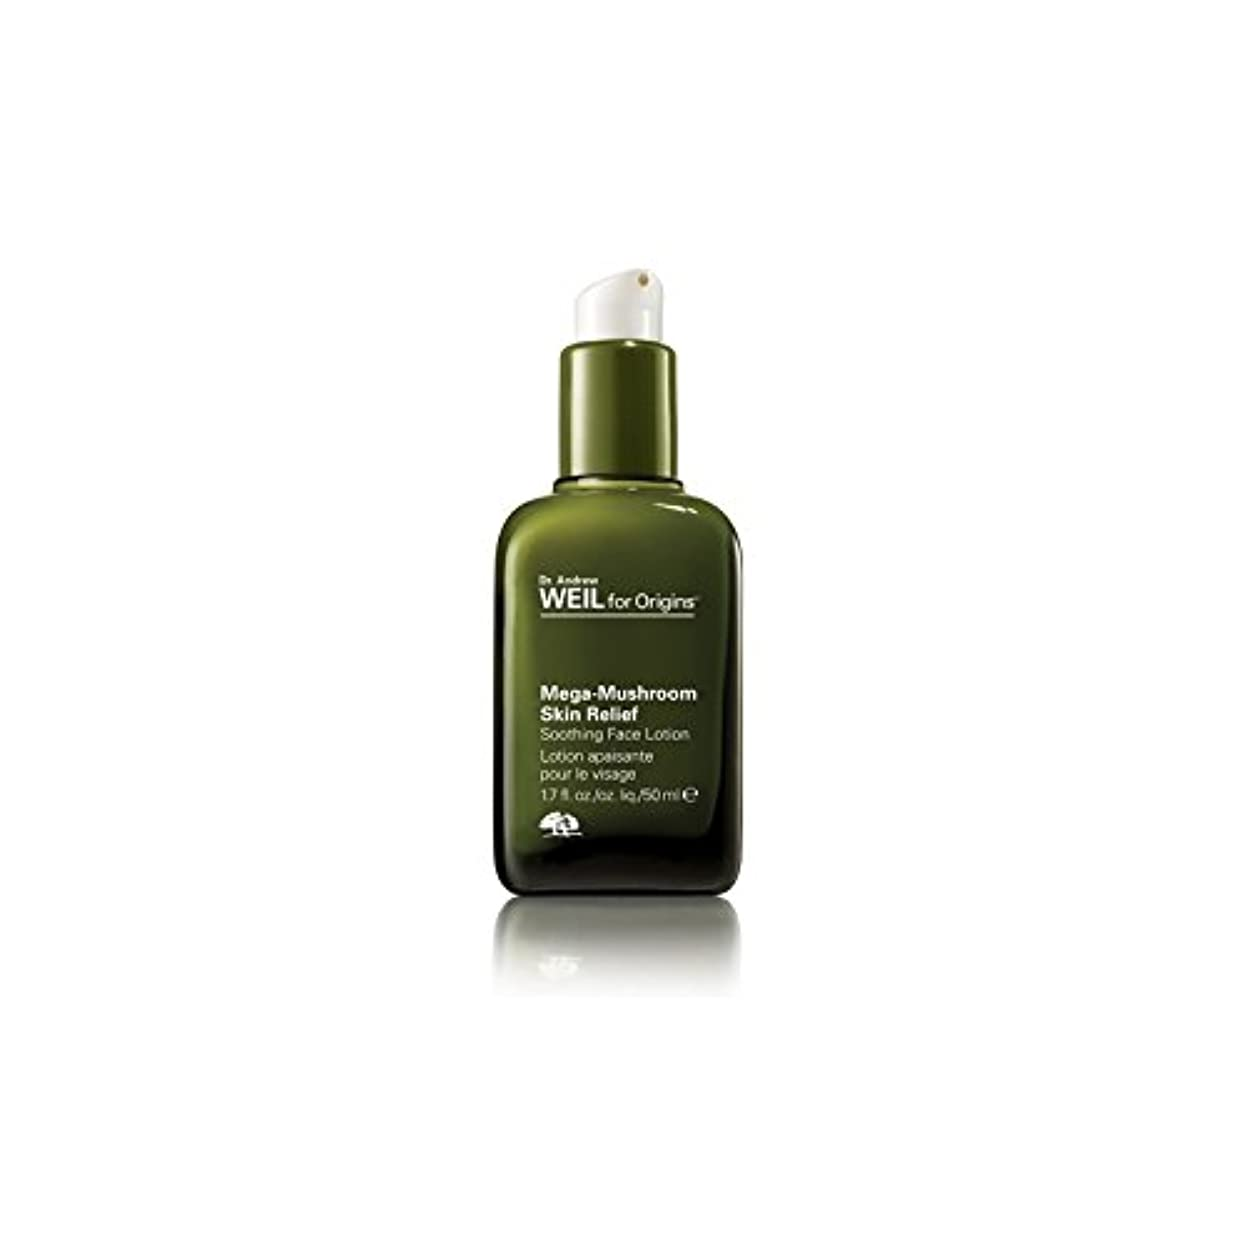 男らしさ長さ確認Origins Dr. Andrew Weil For Origins Mega-Mushroom Skin Relief Soothing Face Lotion 50ml (Pack of 6) - 起源アンドルー?ワイル...